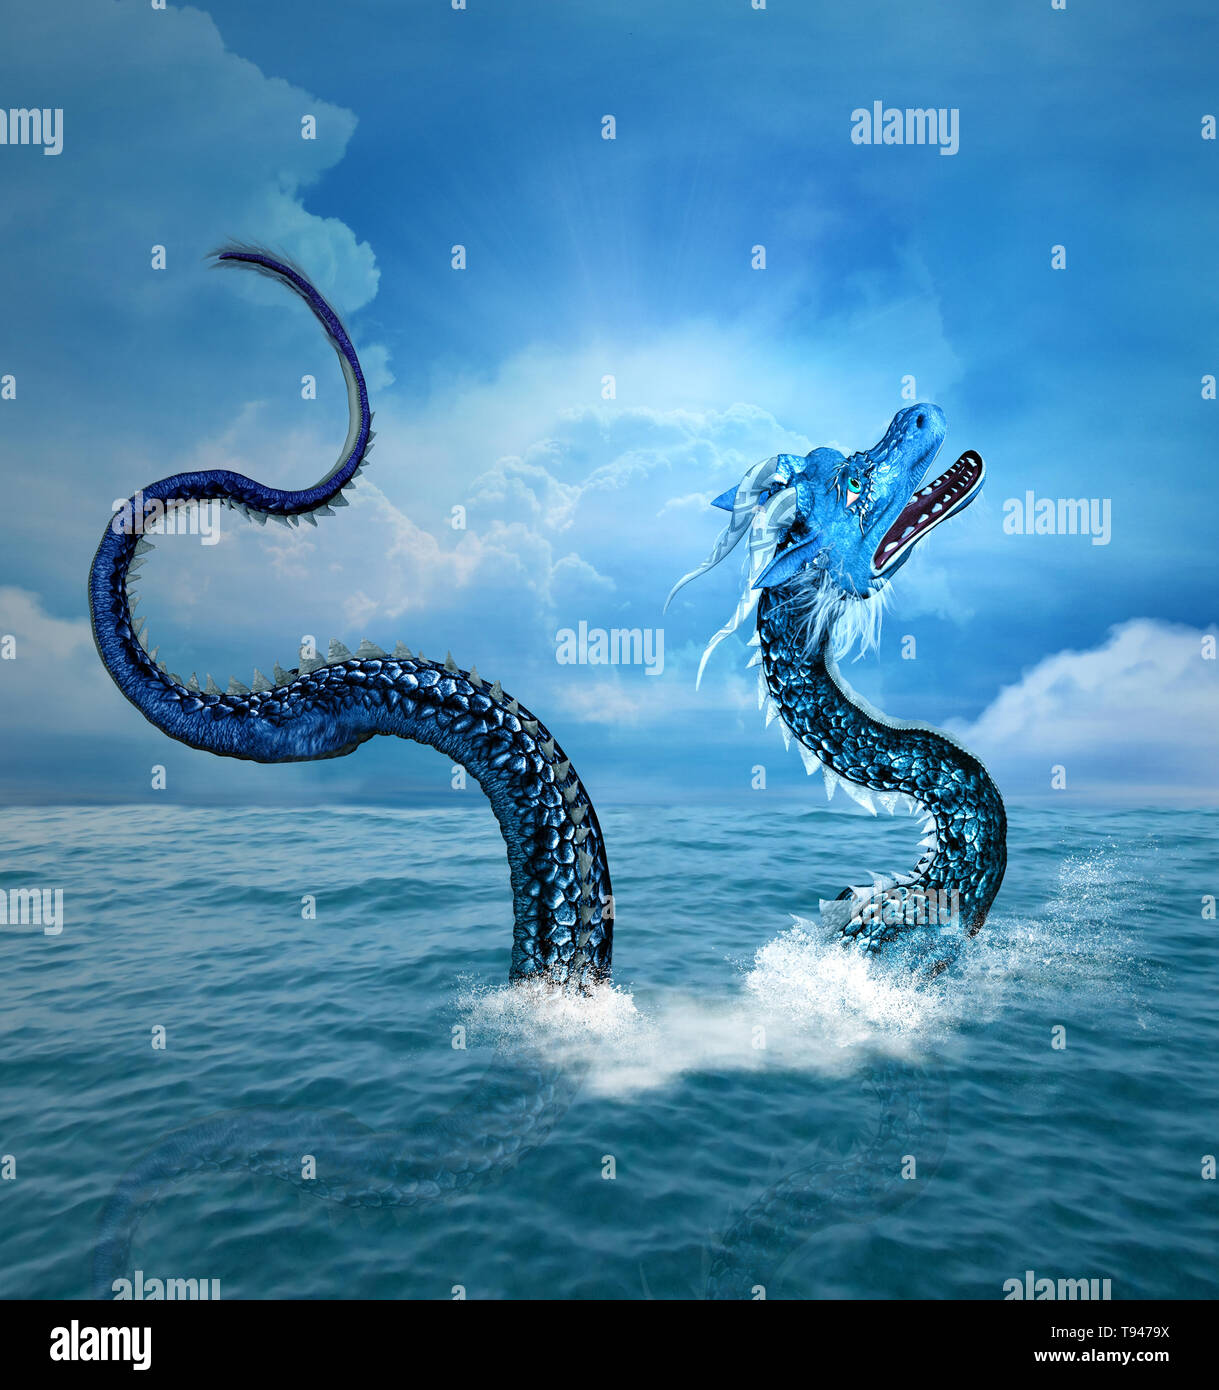 Sea dragon arising from the blue ocean - Stock Image